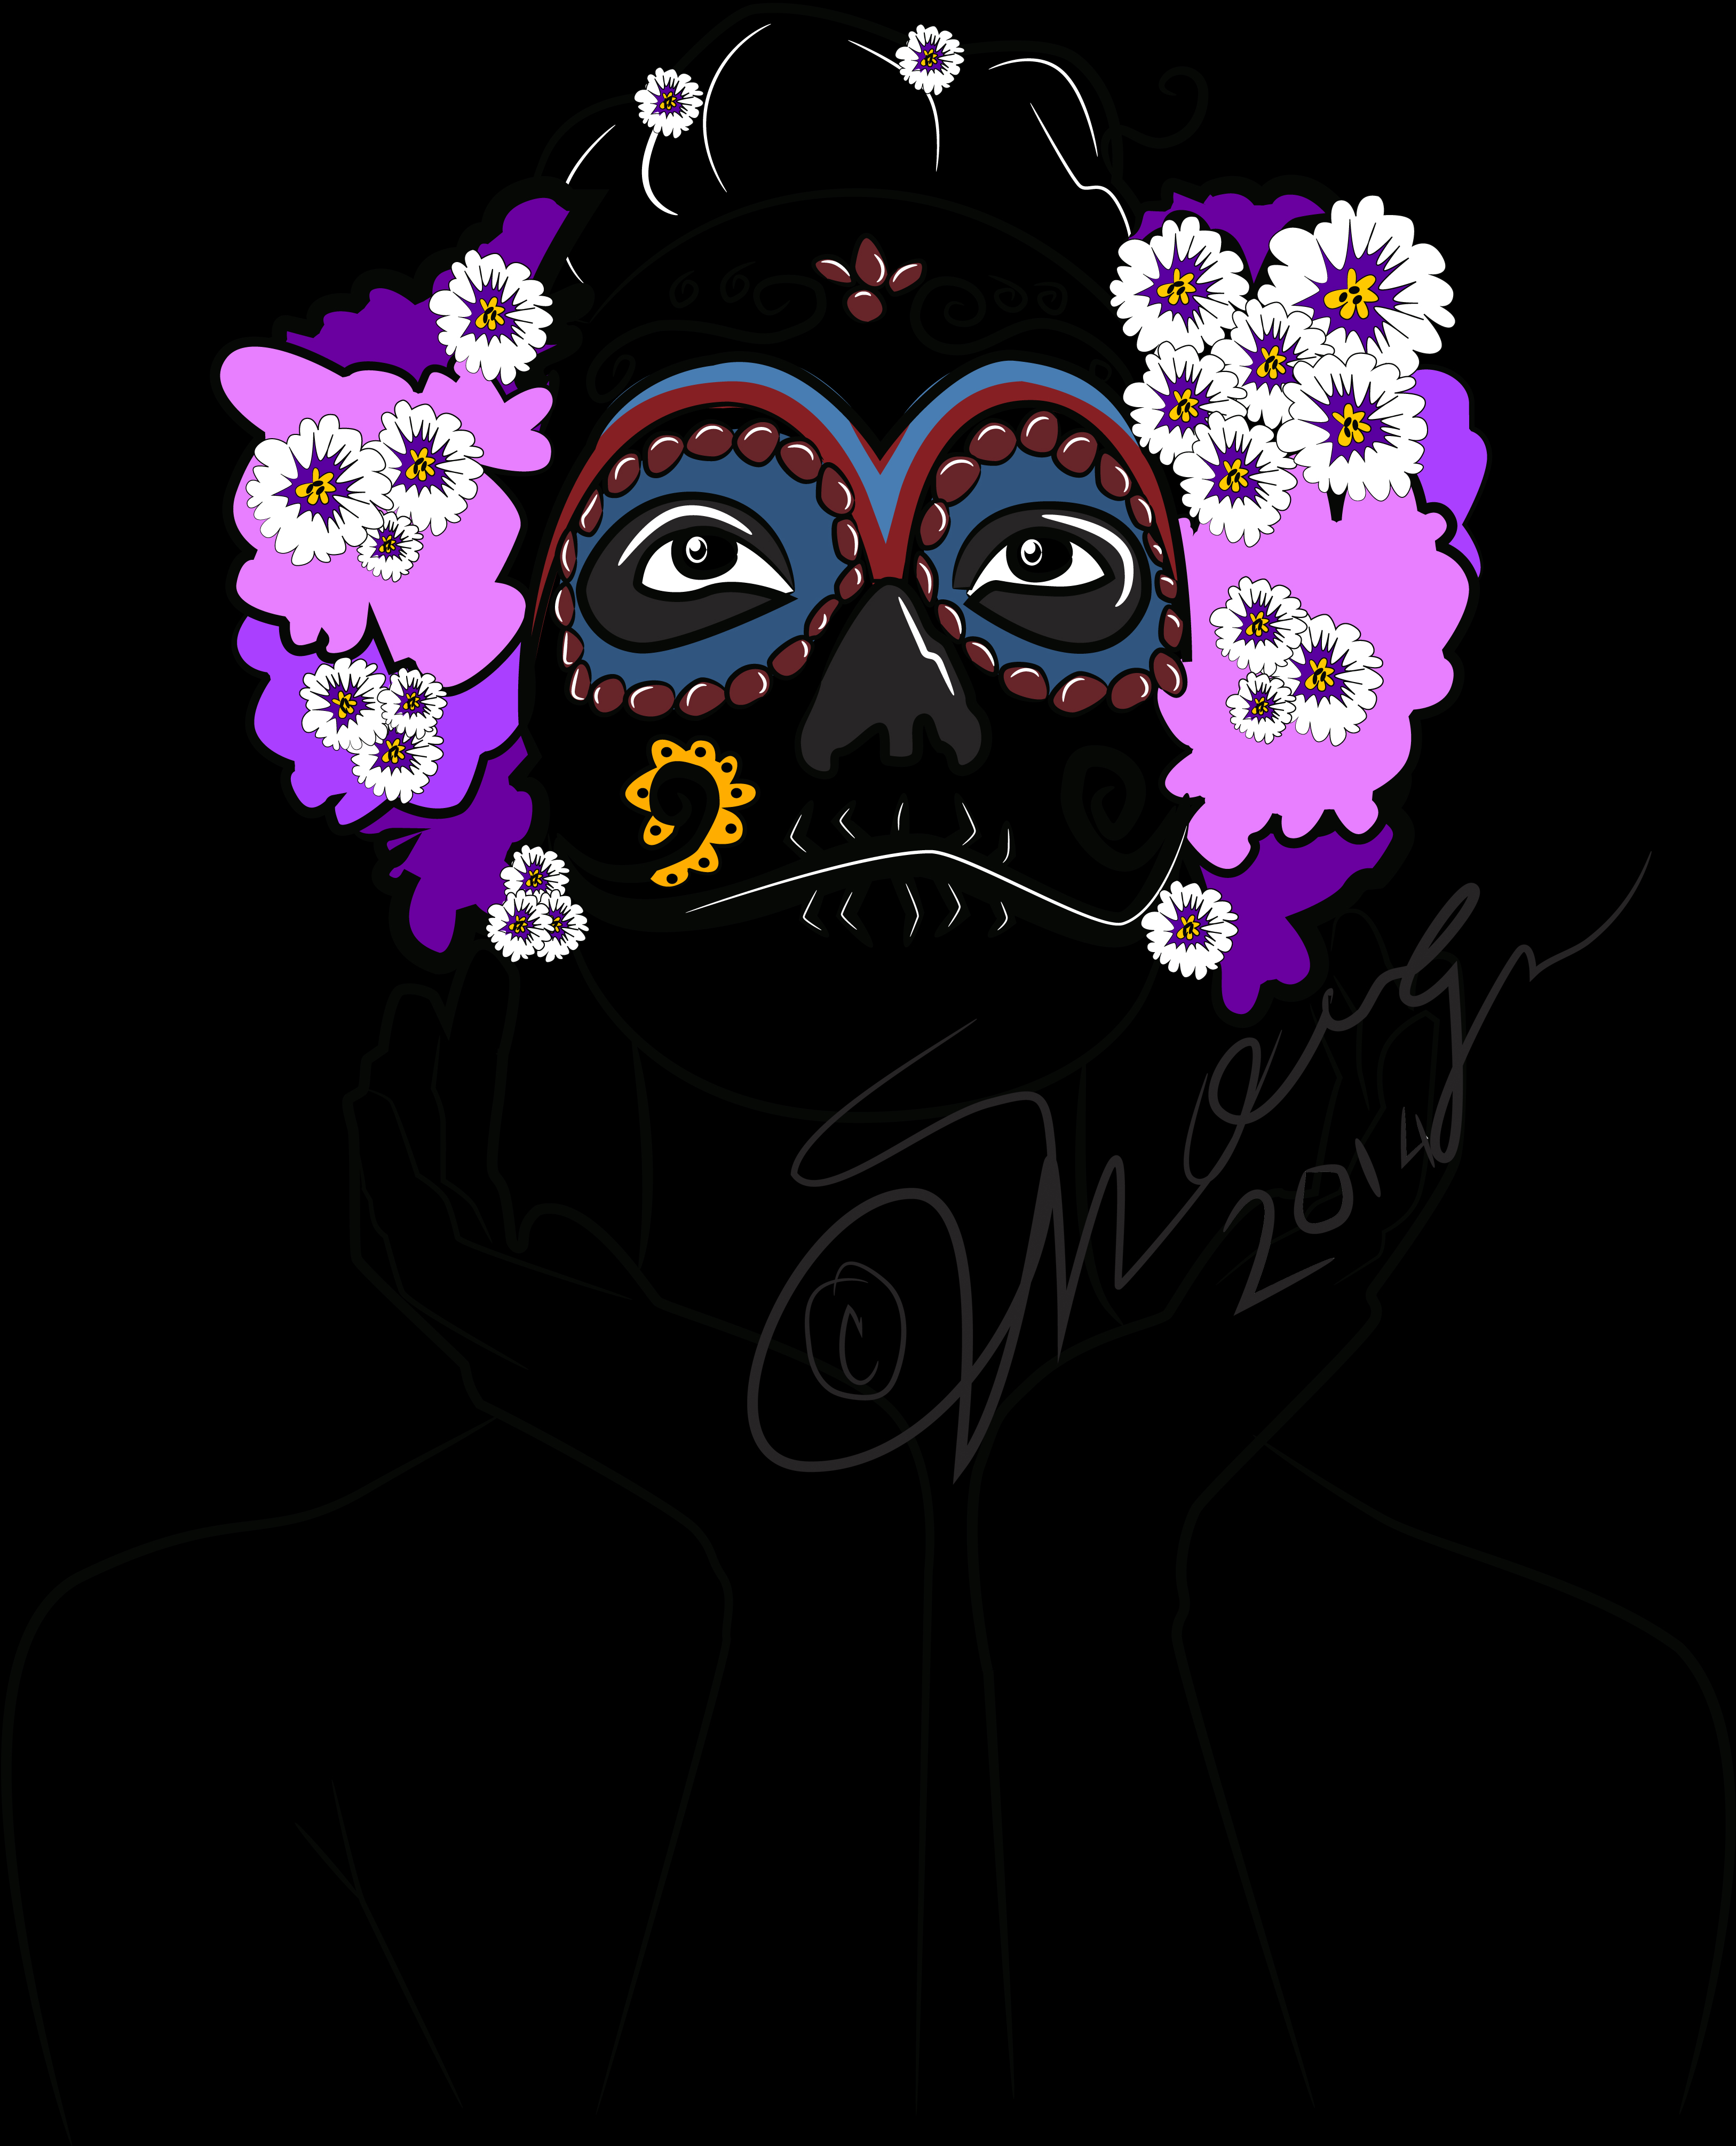 Day of the day mask 02